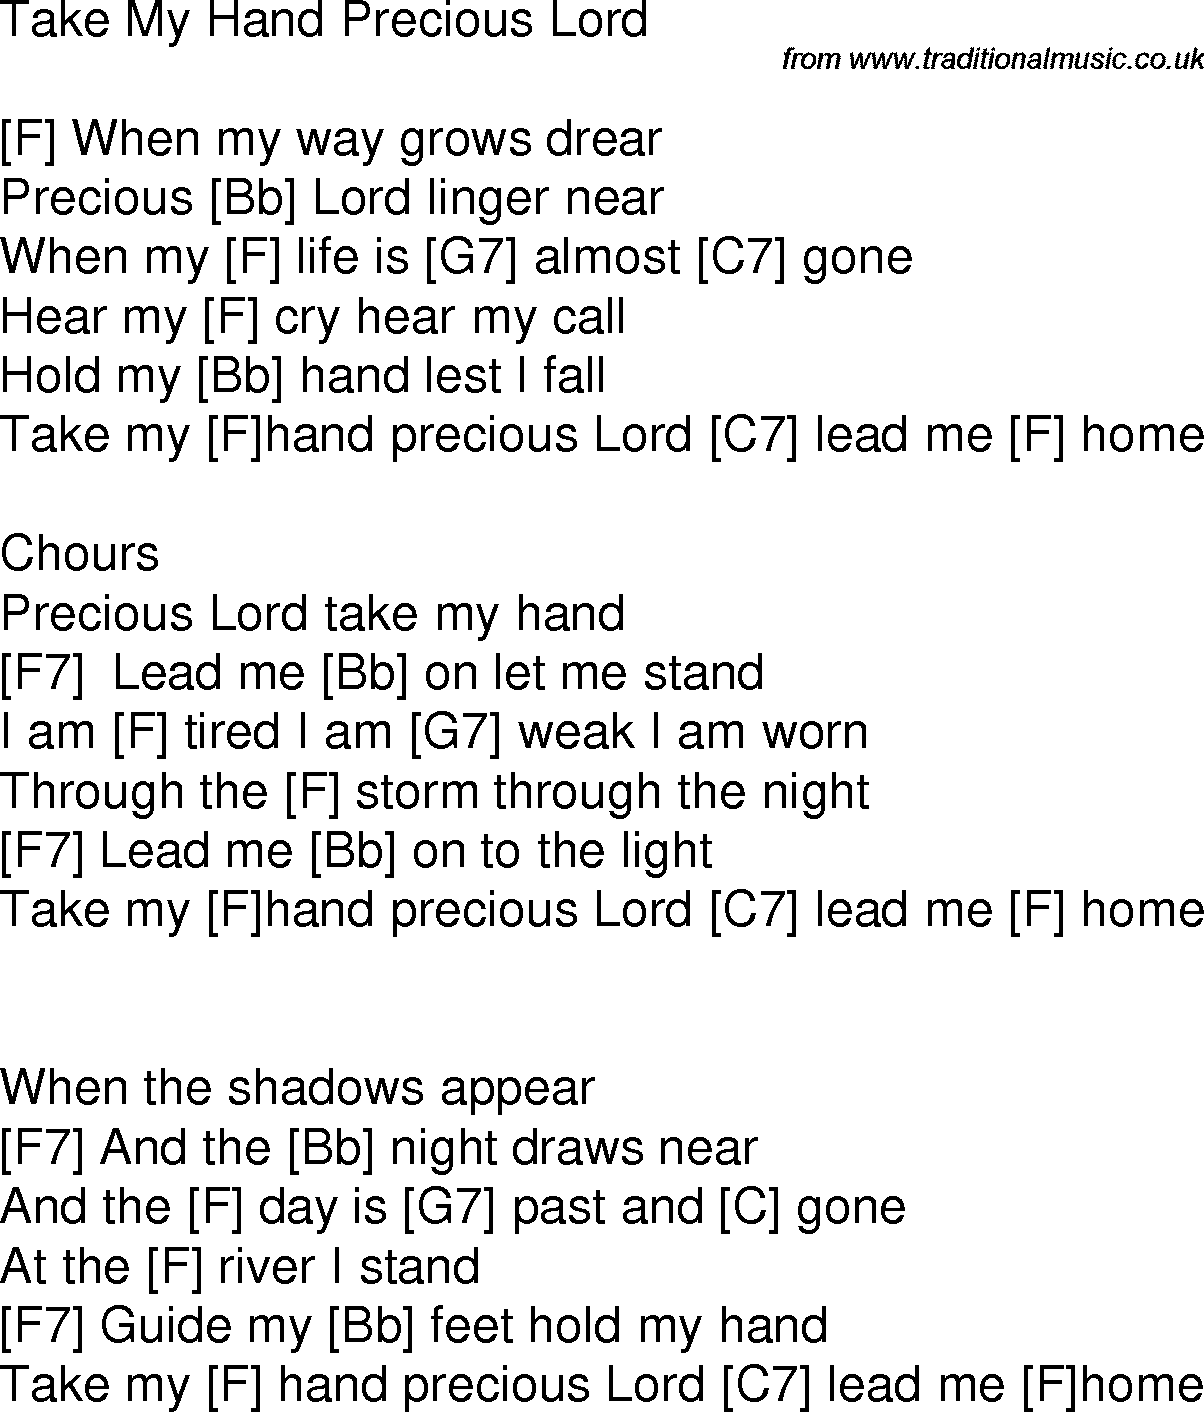 Old Time Song Lyrics With Chords For Take My Hand Precious Lord F